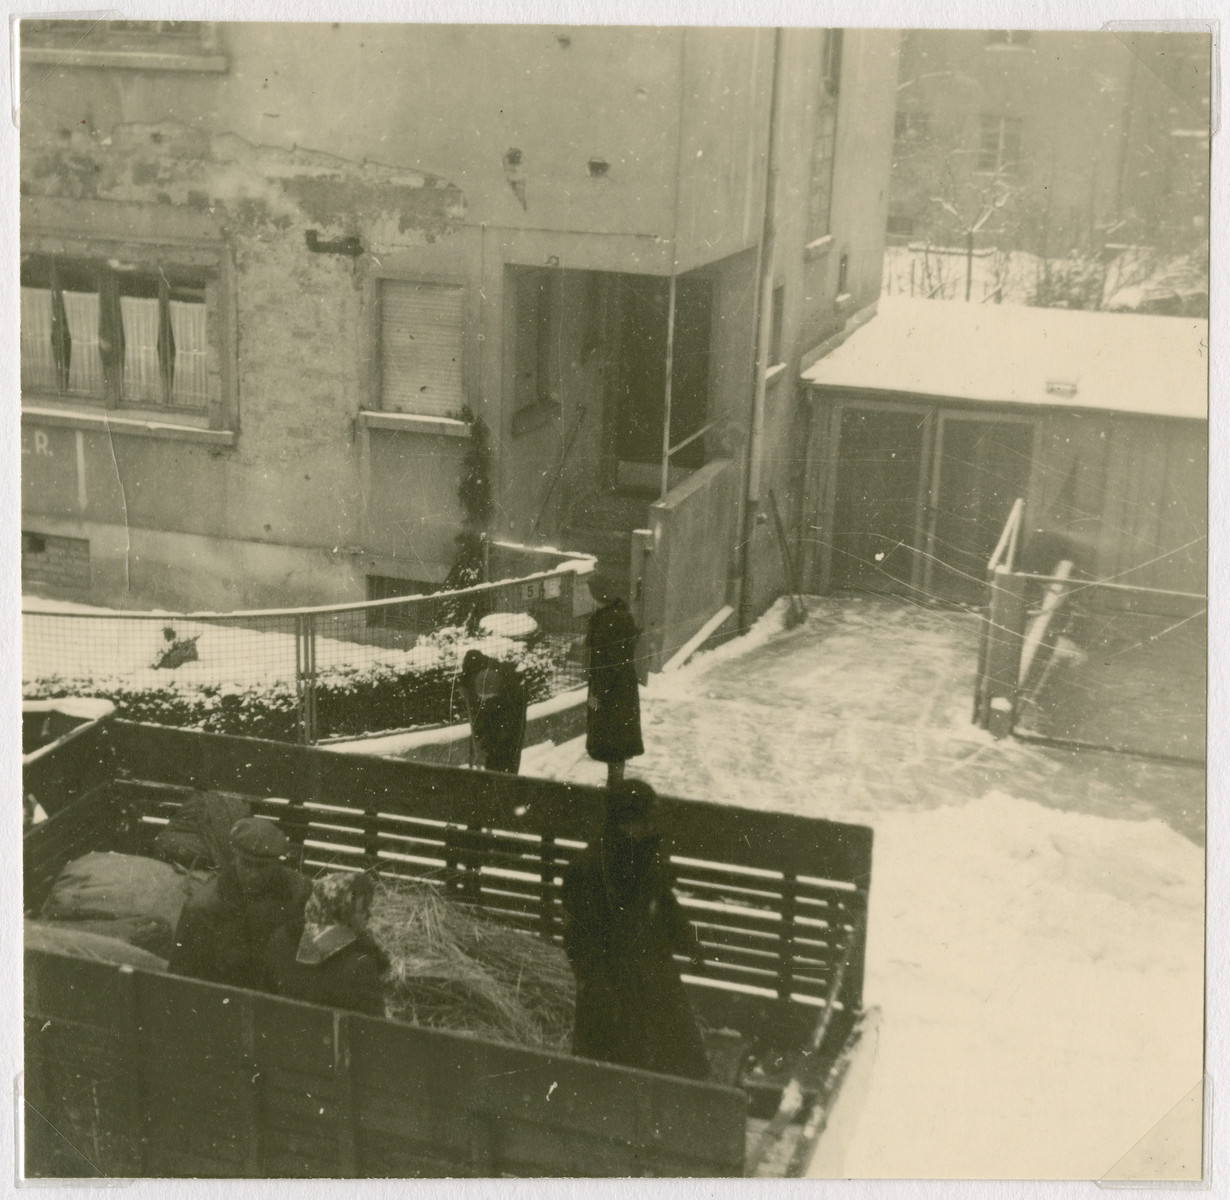 "An open truck is parked in the Ziegenhain displaced persons camp in the snow.  The original caption states: ""Truck from Ziegenhain waiting for Council supplies to be loaded on it."""